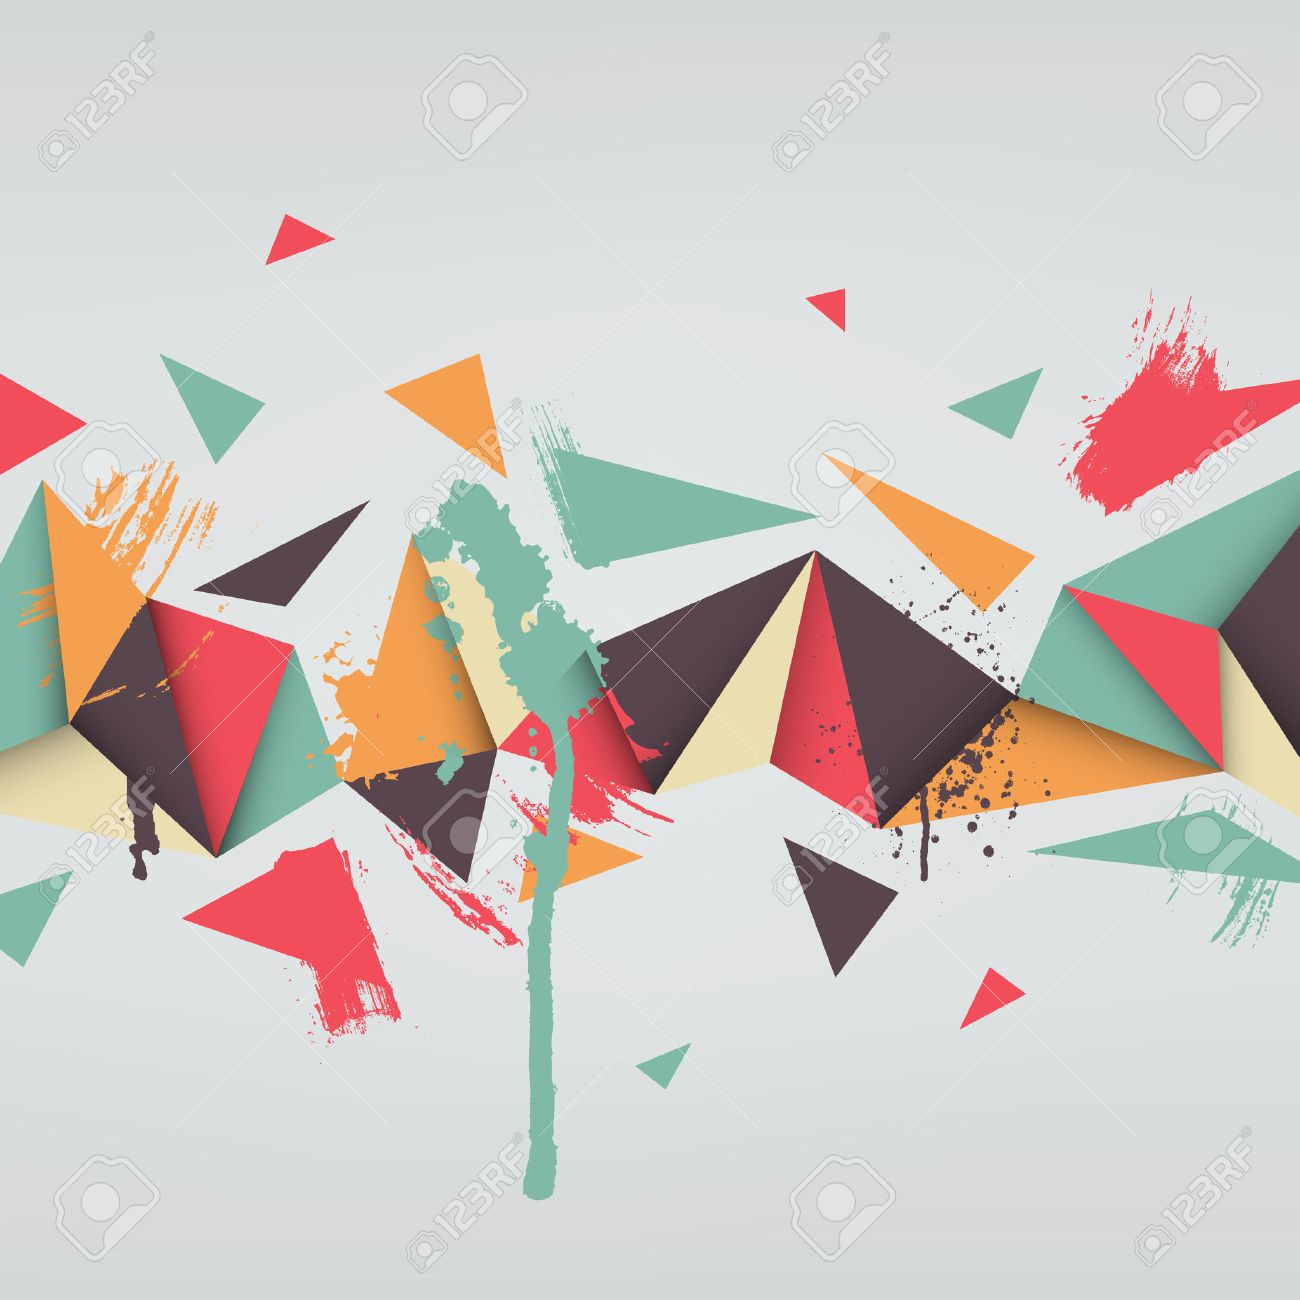 Poster design background - Vector Background Illustration Of Abstract Texture With Triangles Pattern Design For Banner Poster